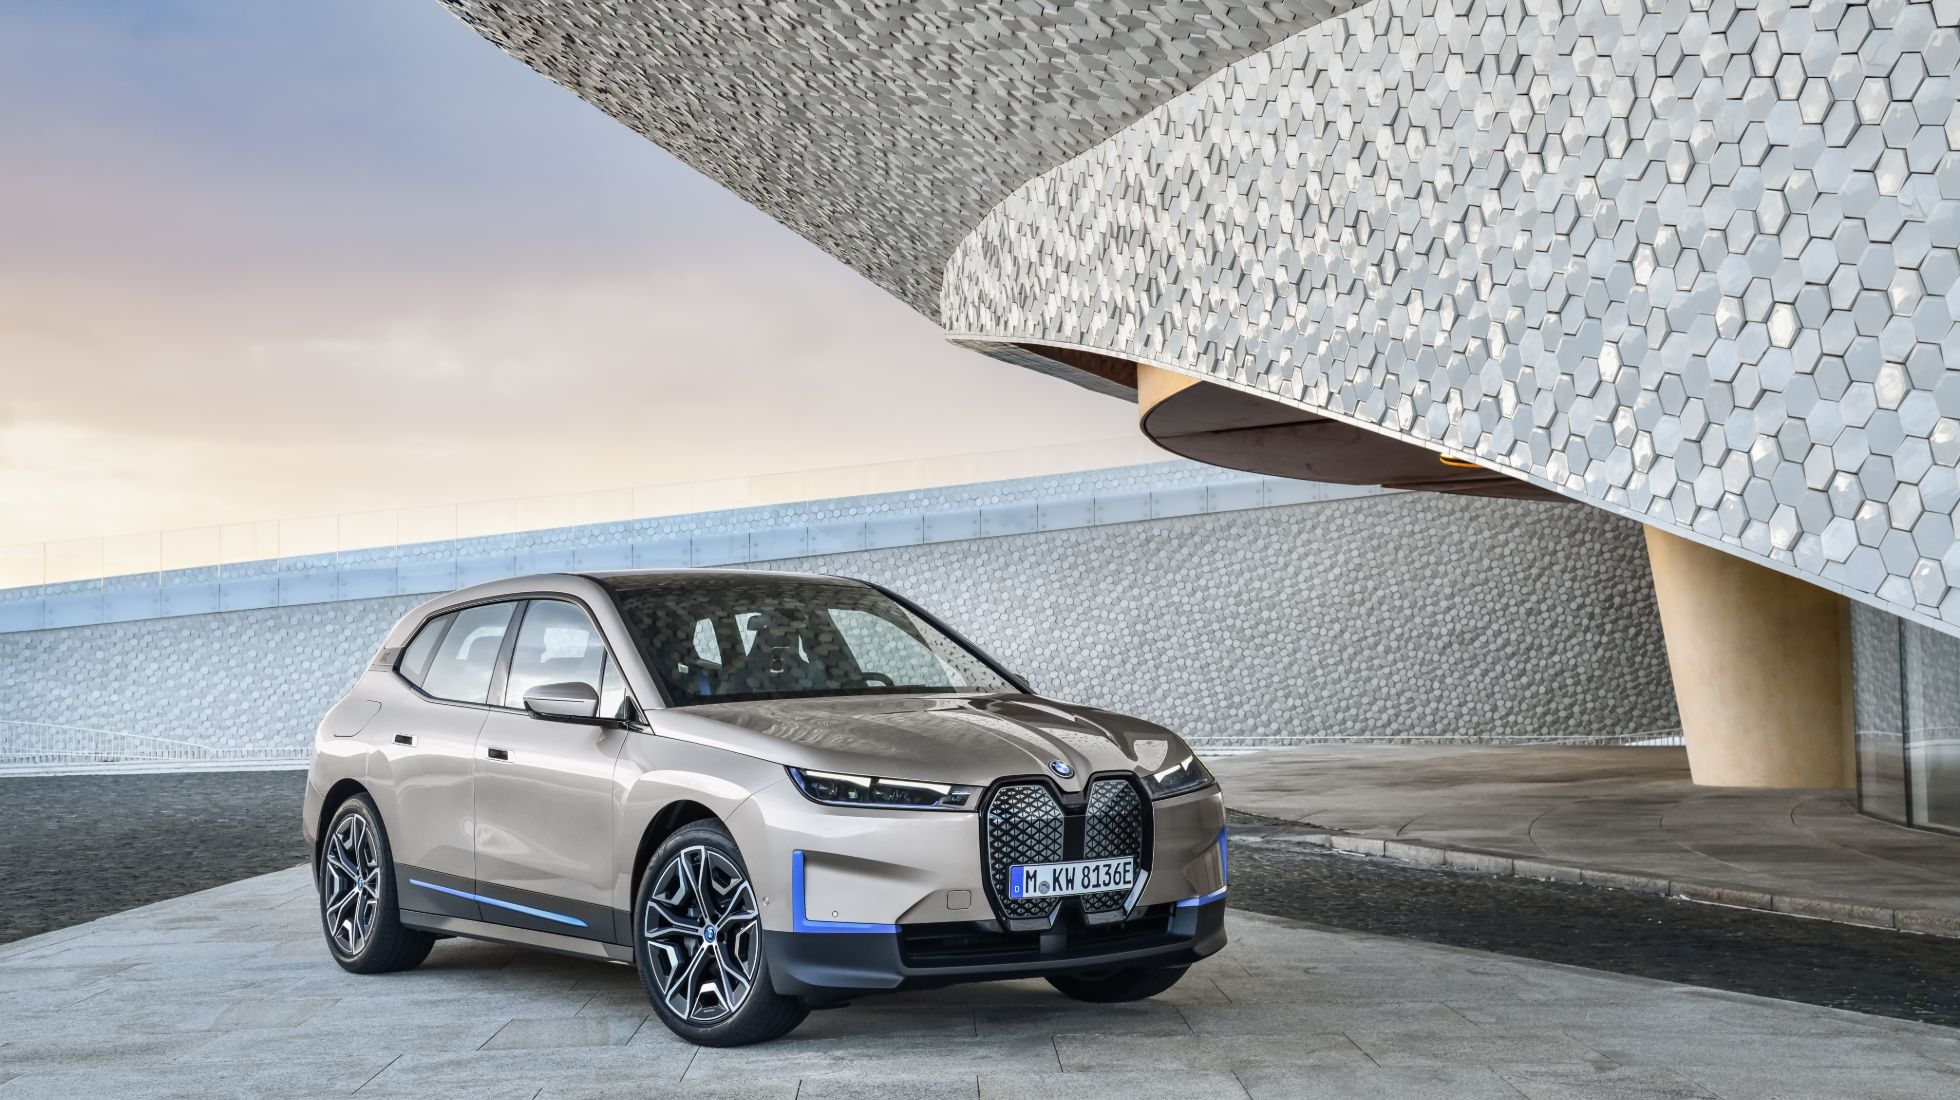 BMW's fully electric iX will make market debut in 2021